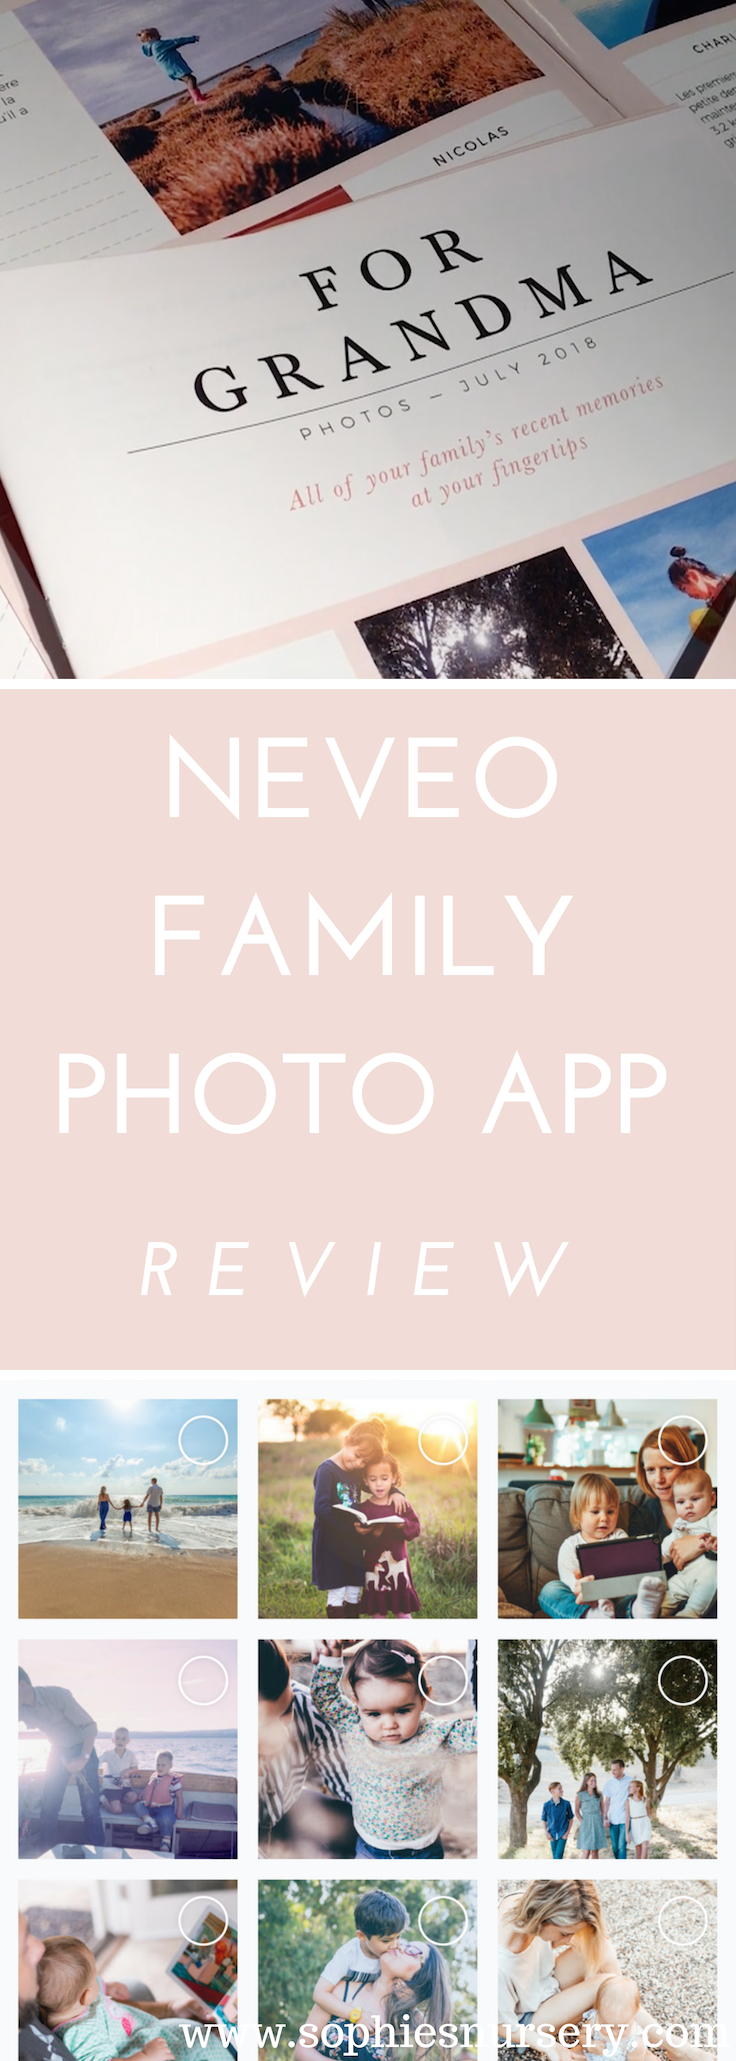 (AD) Create a monthly journal of all your photos using the Neveo Family Photo App. The perfect way to stay in touch & share your best moments through digital pictures & words!